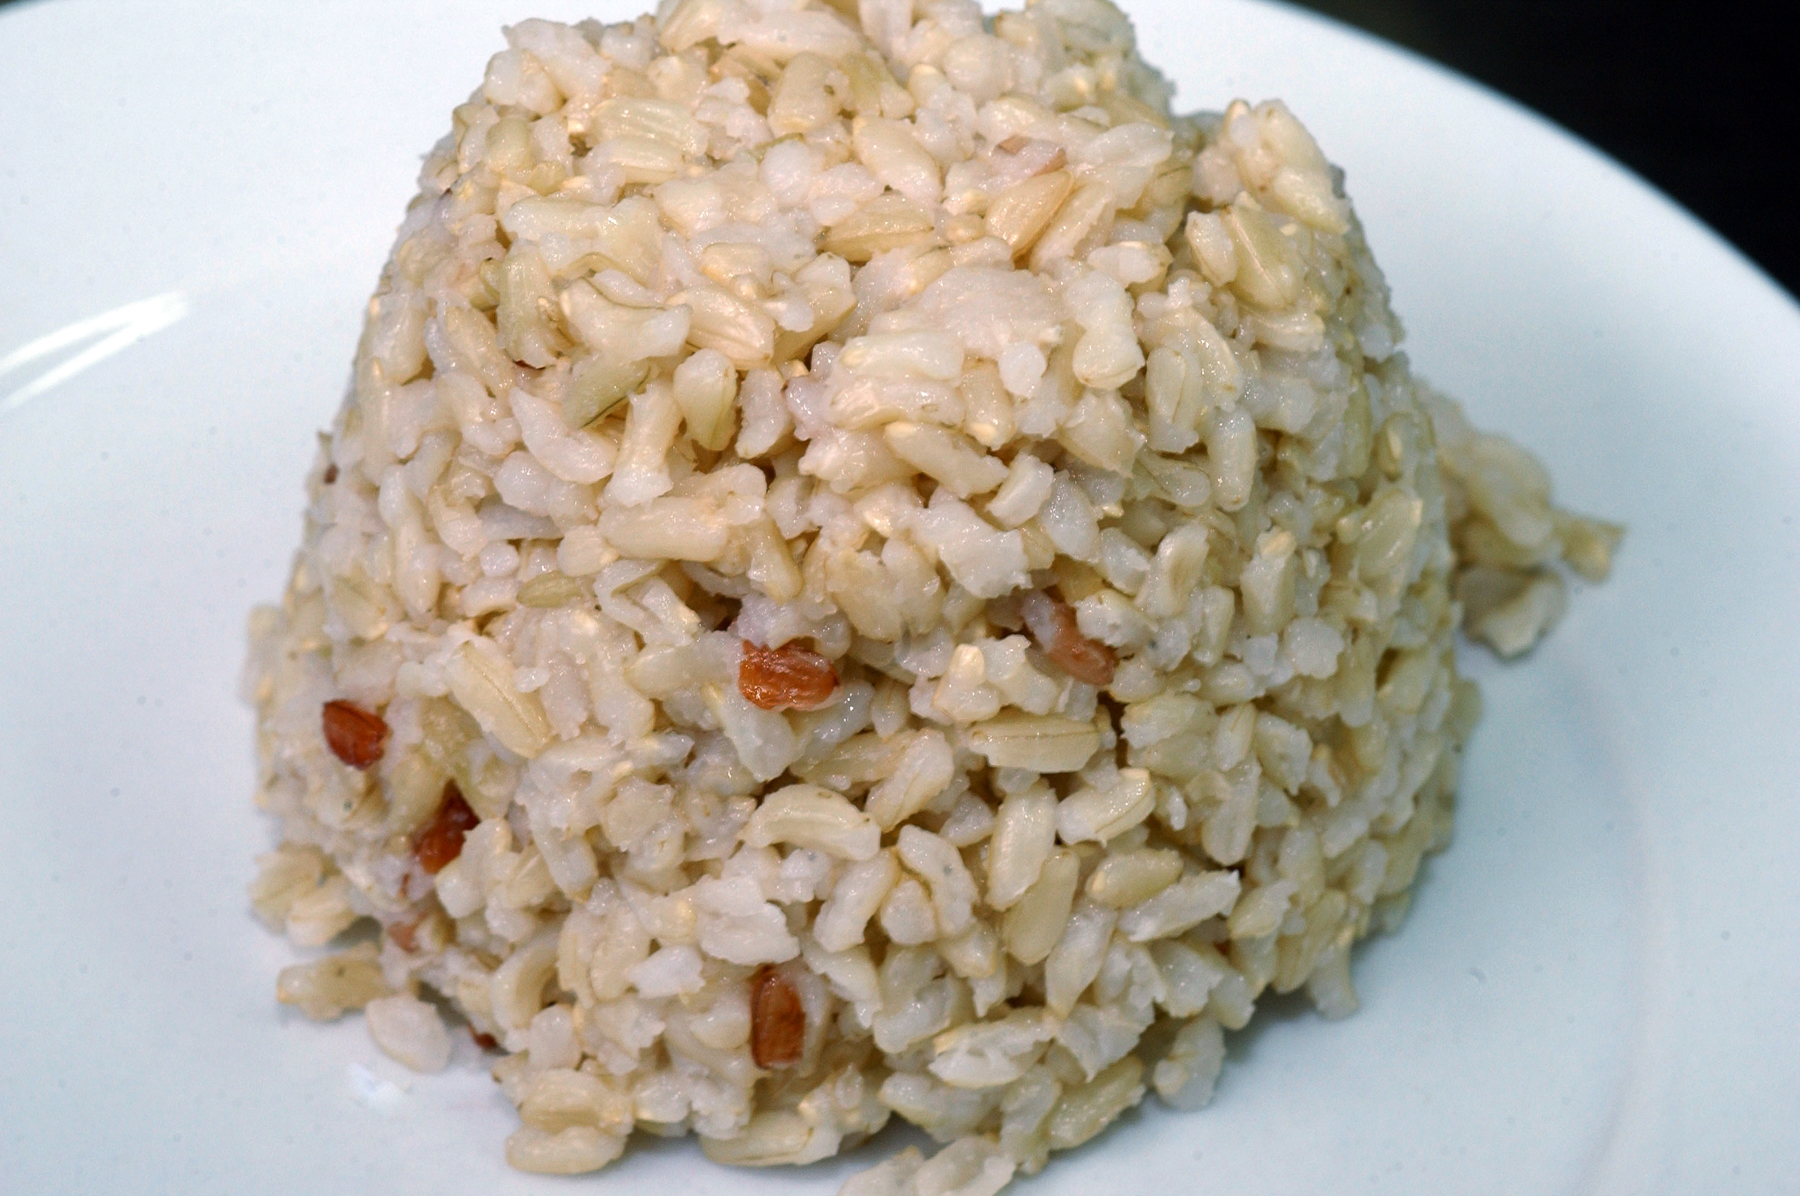 A plate of cooked brown rice will accompany a meal in the Philippines. (Photo: IRRI)